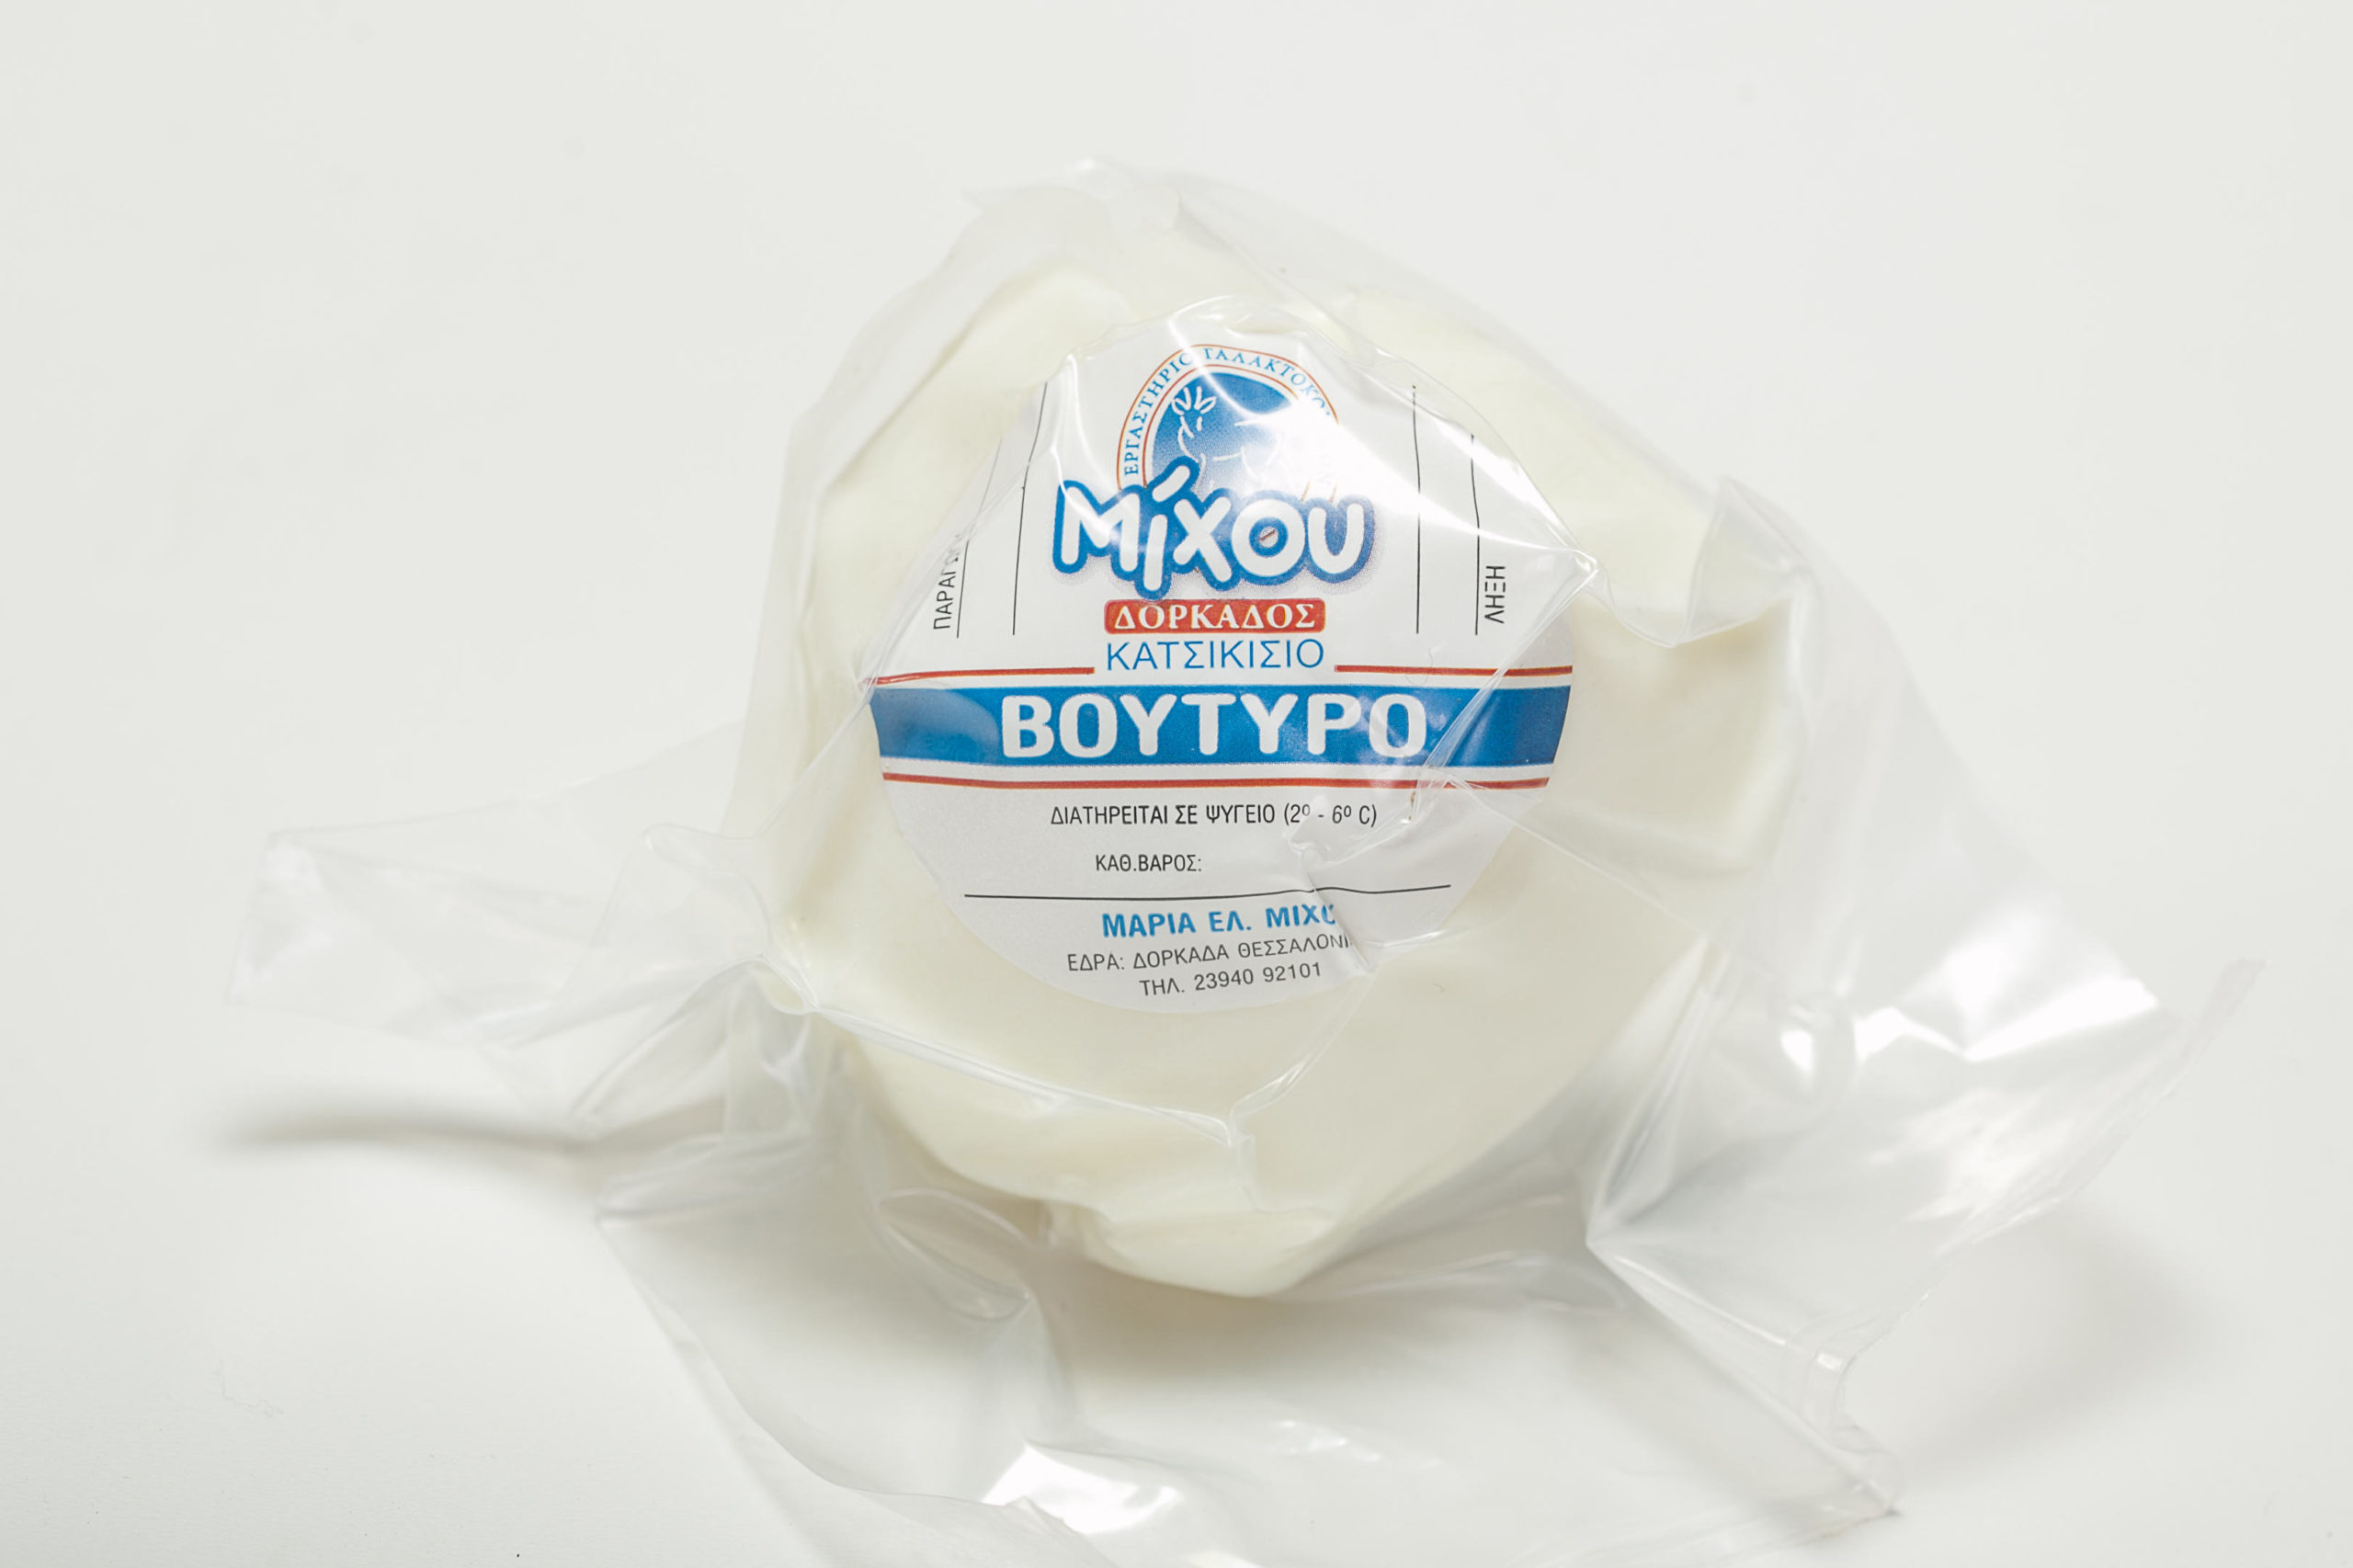 Goat Butter Michou Family Dairy